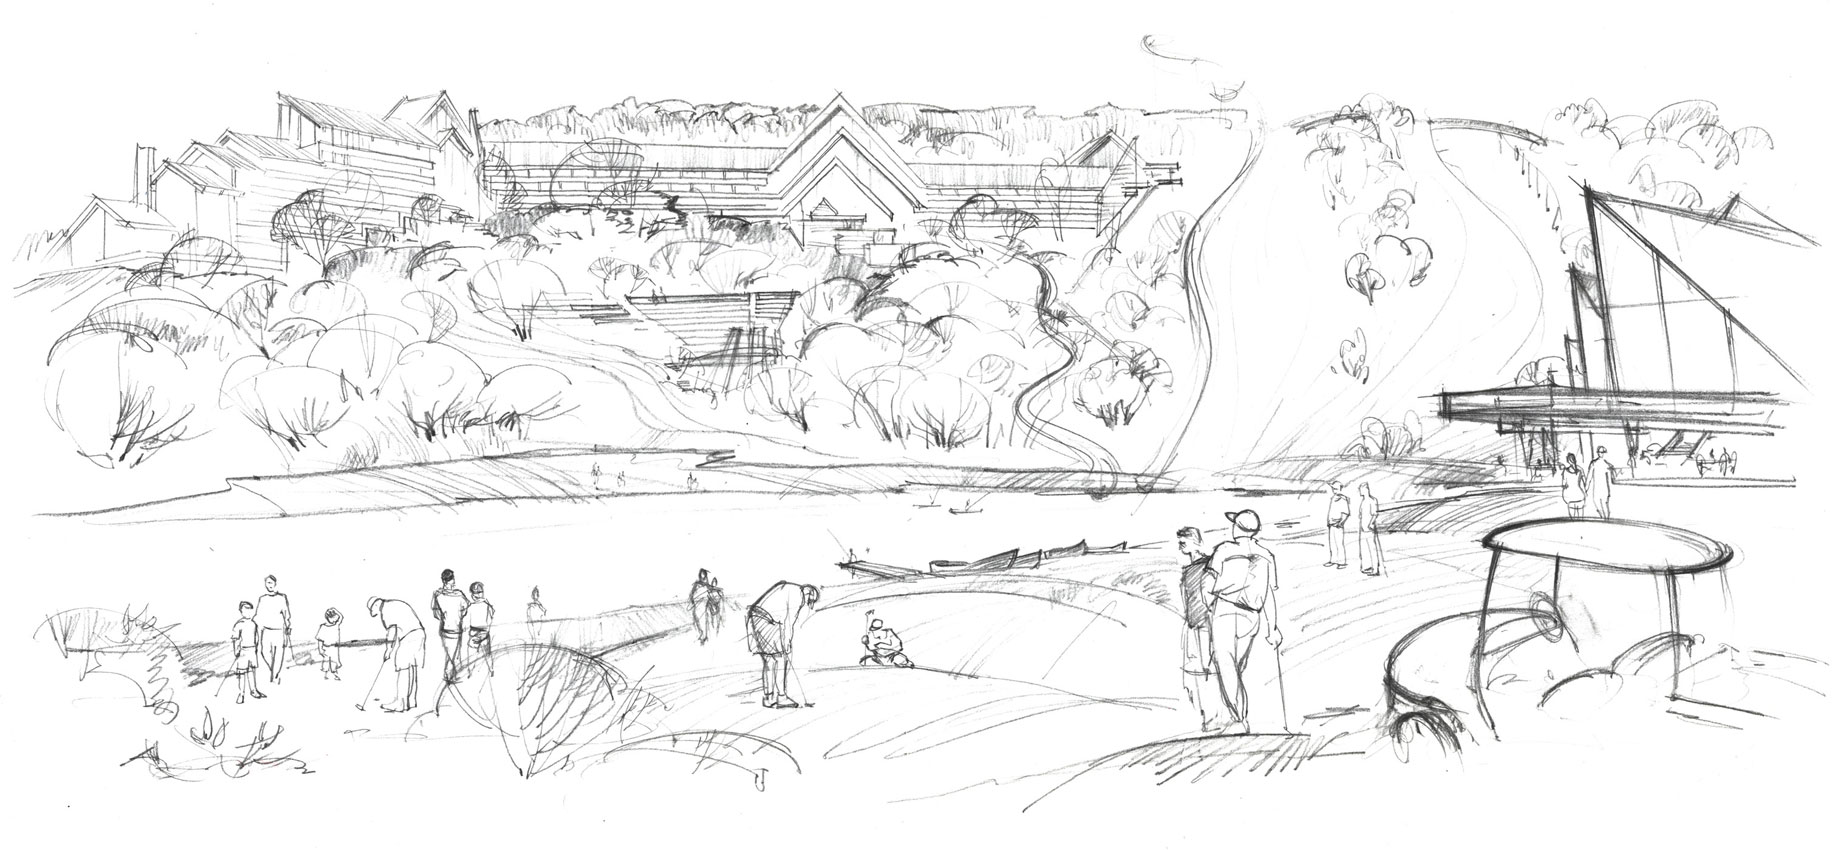 Architectural concept pre-design sketch for real estate firm. Free hand rendering.